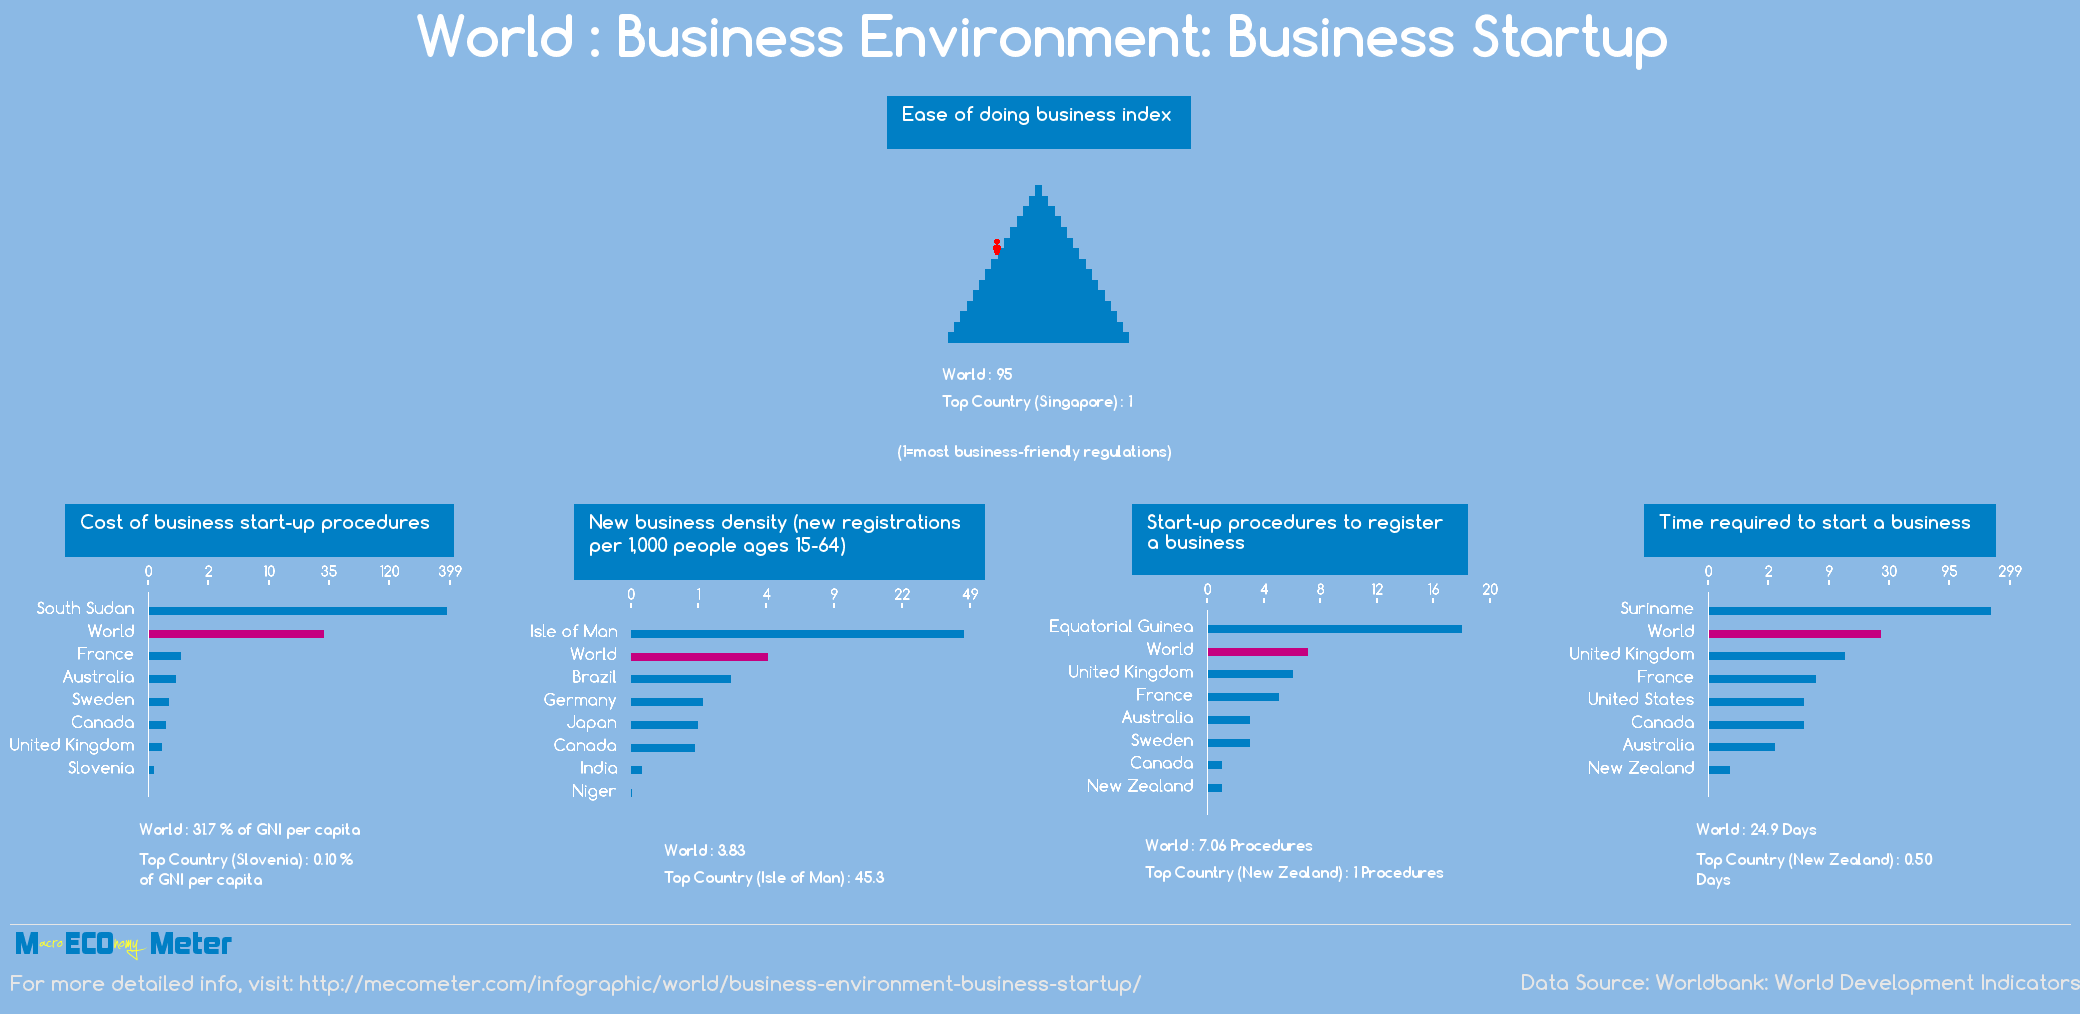 World : Business Environment: Business Startup